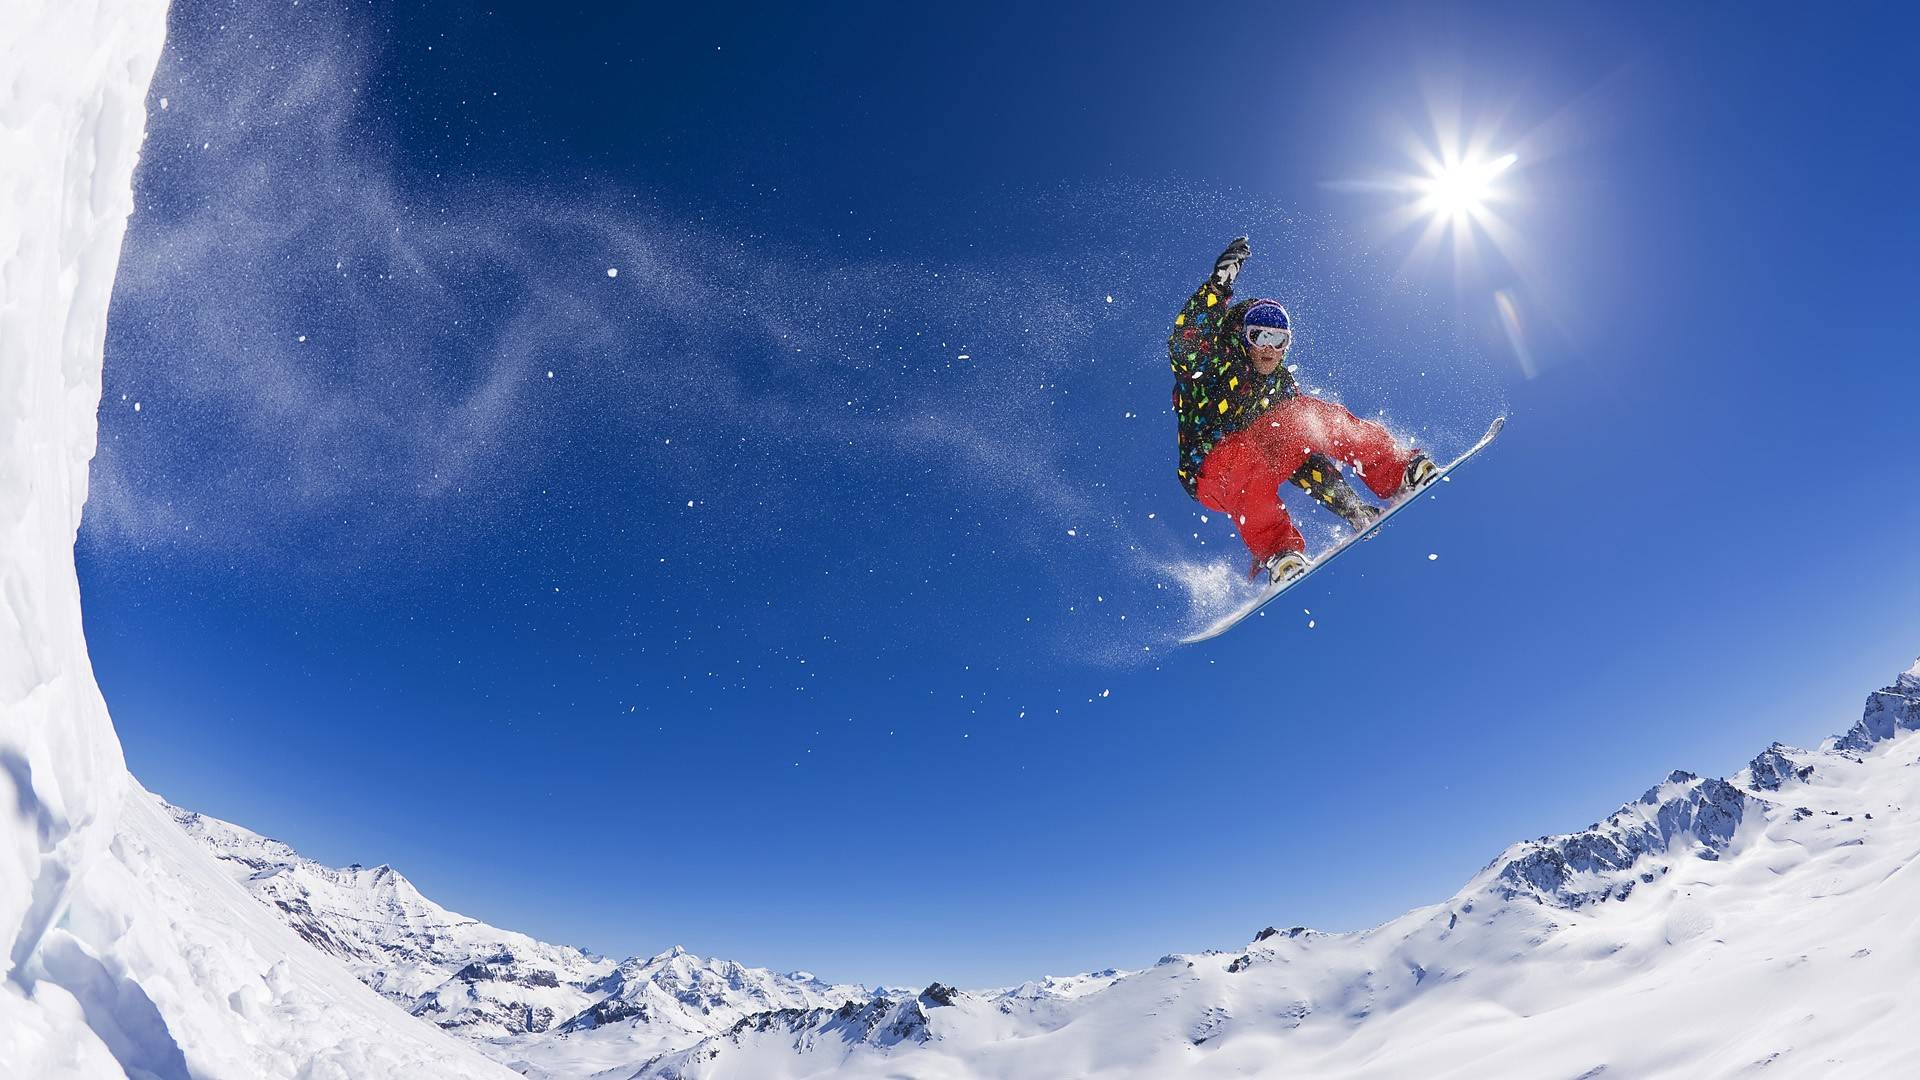 snowboarding alps   wallpaper